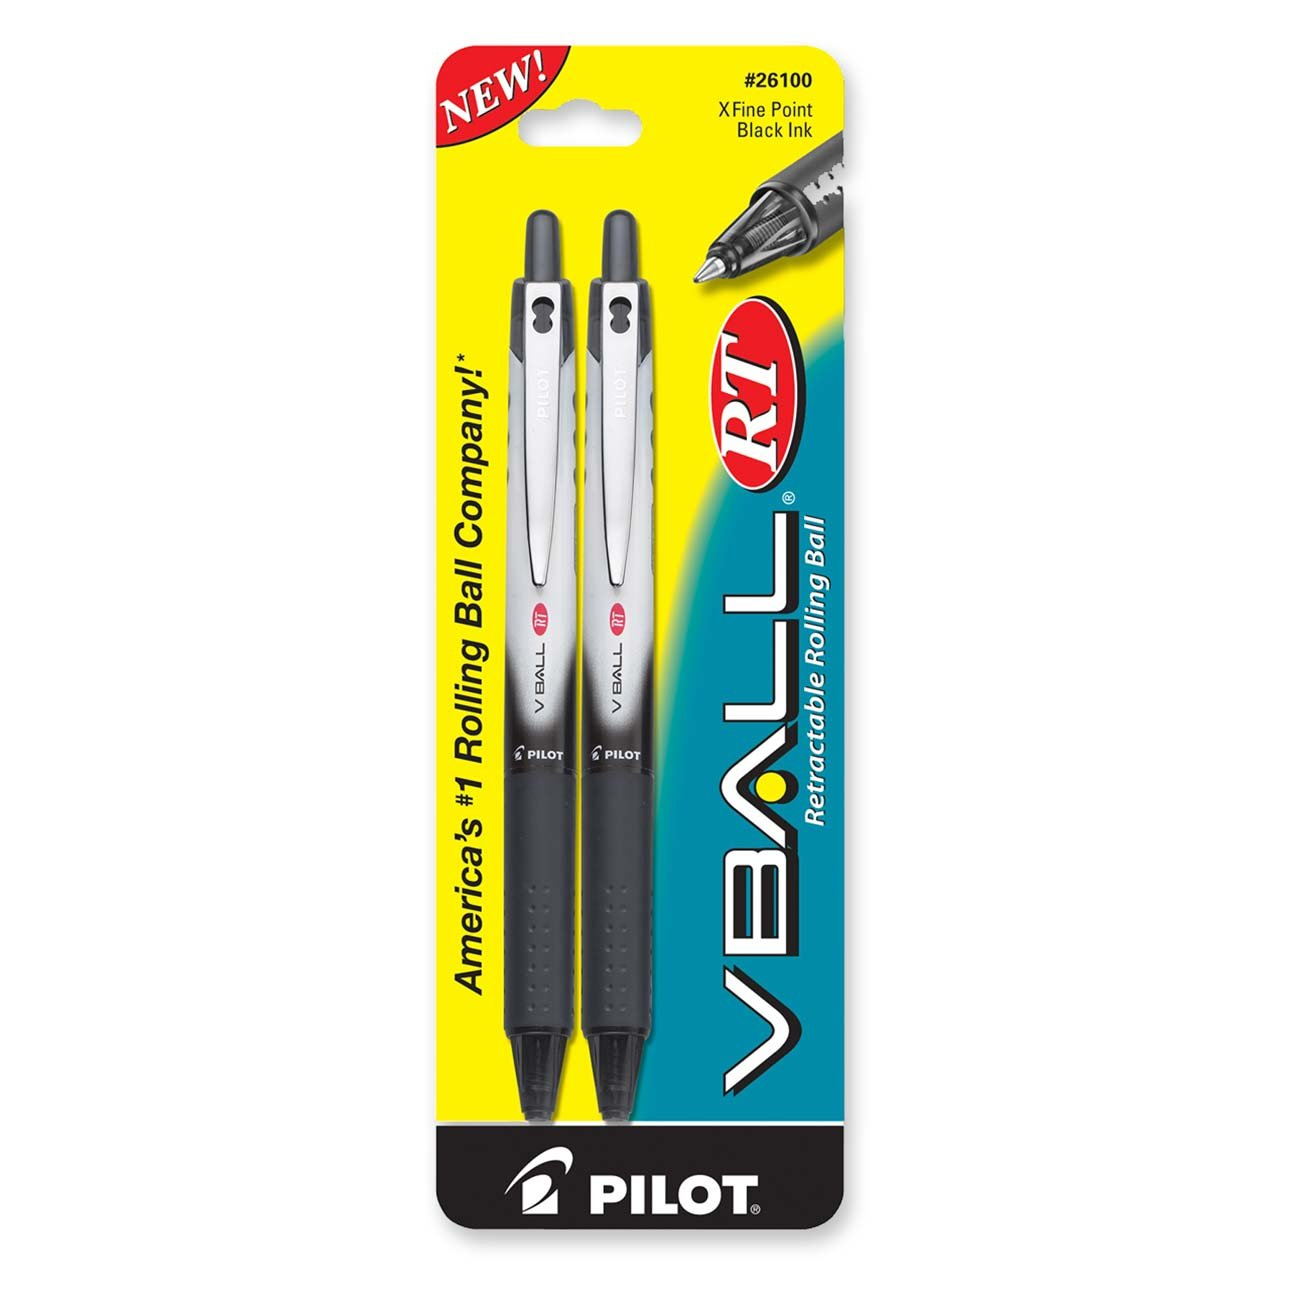 PILOT VBall RT Refillable & Retractable Liquid Ink Rolling Ball Pens, Extra Fine Point, Black Ink, 2-Pack (26100)